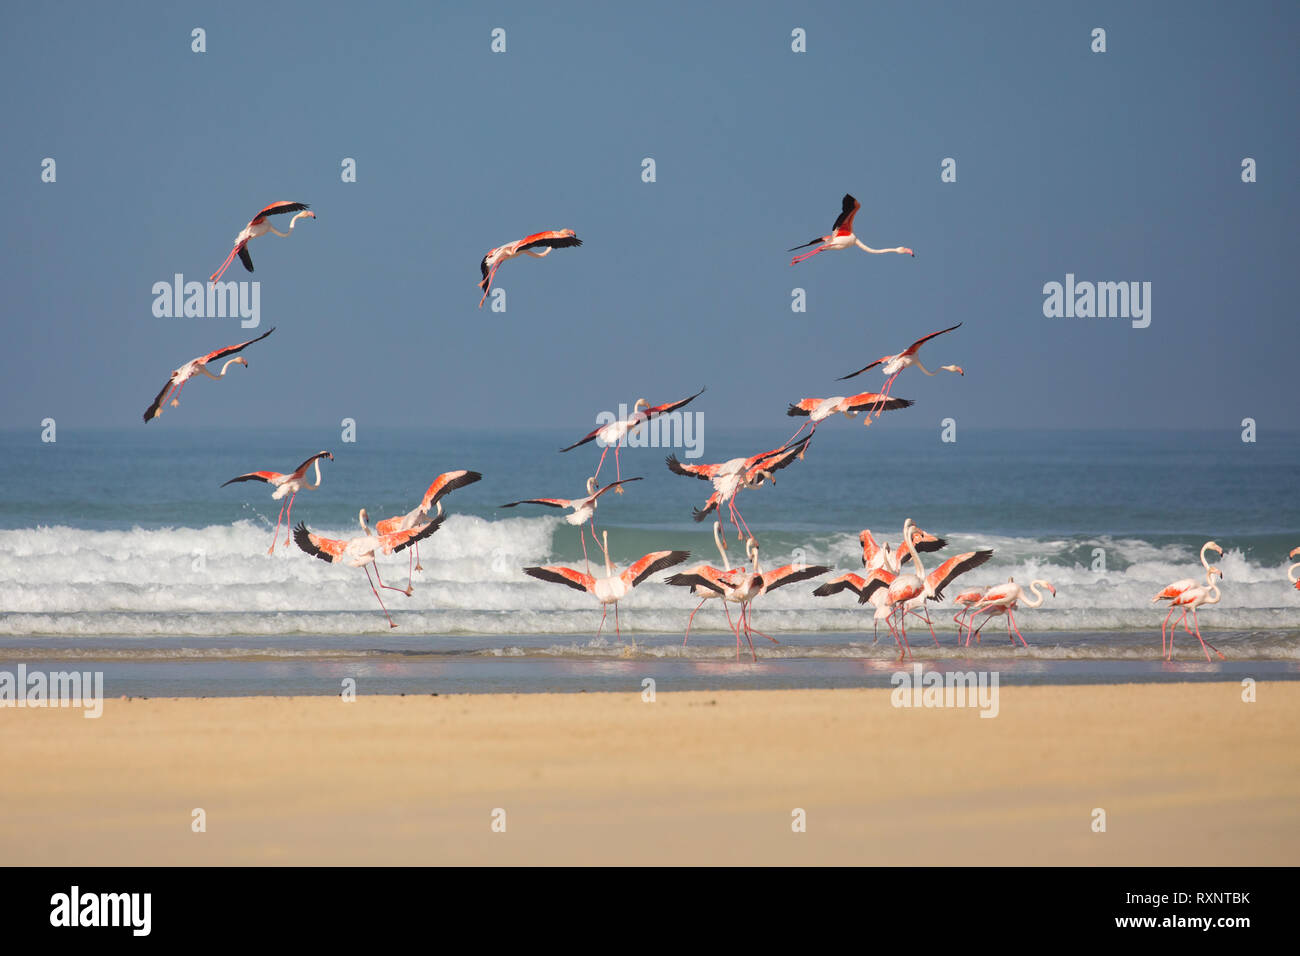 swarm of flying Flamingos in the De Mond coastal nature reserve, South Africa, with blue Indian Ocean waves in the background - Stock Image